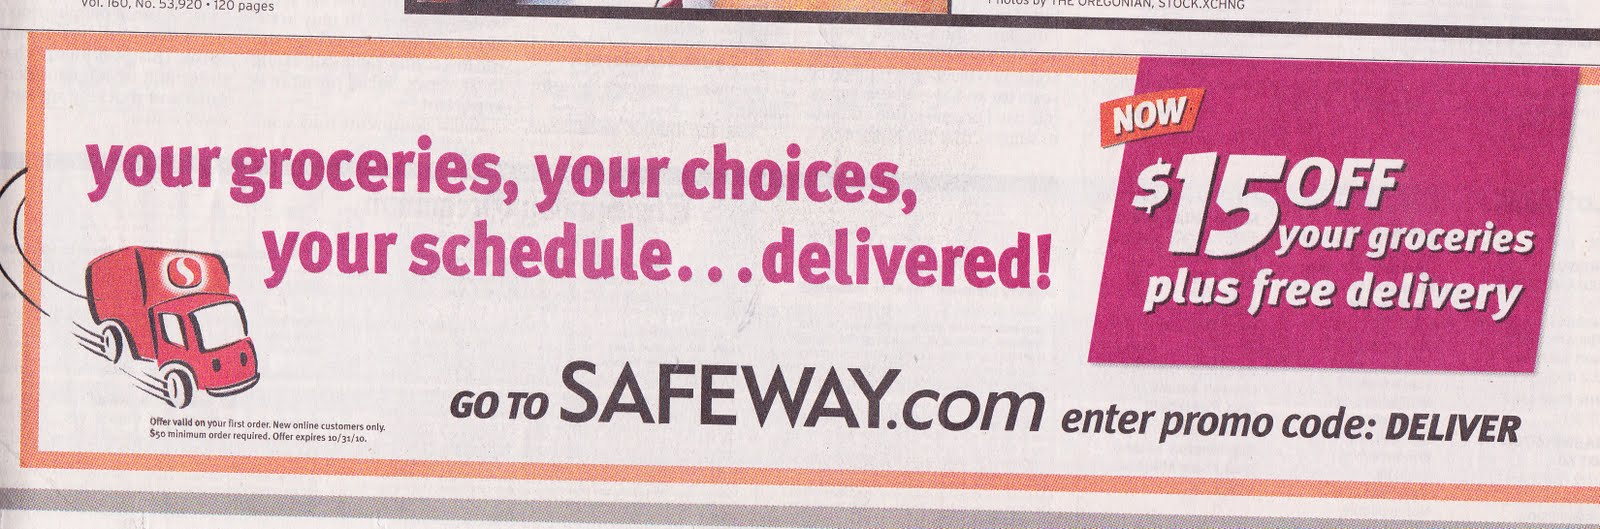 Fresh Easy Buzz Safeway Wants to Grow its OnlineHome Delivery